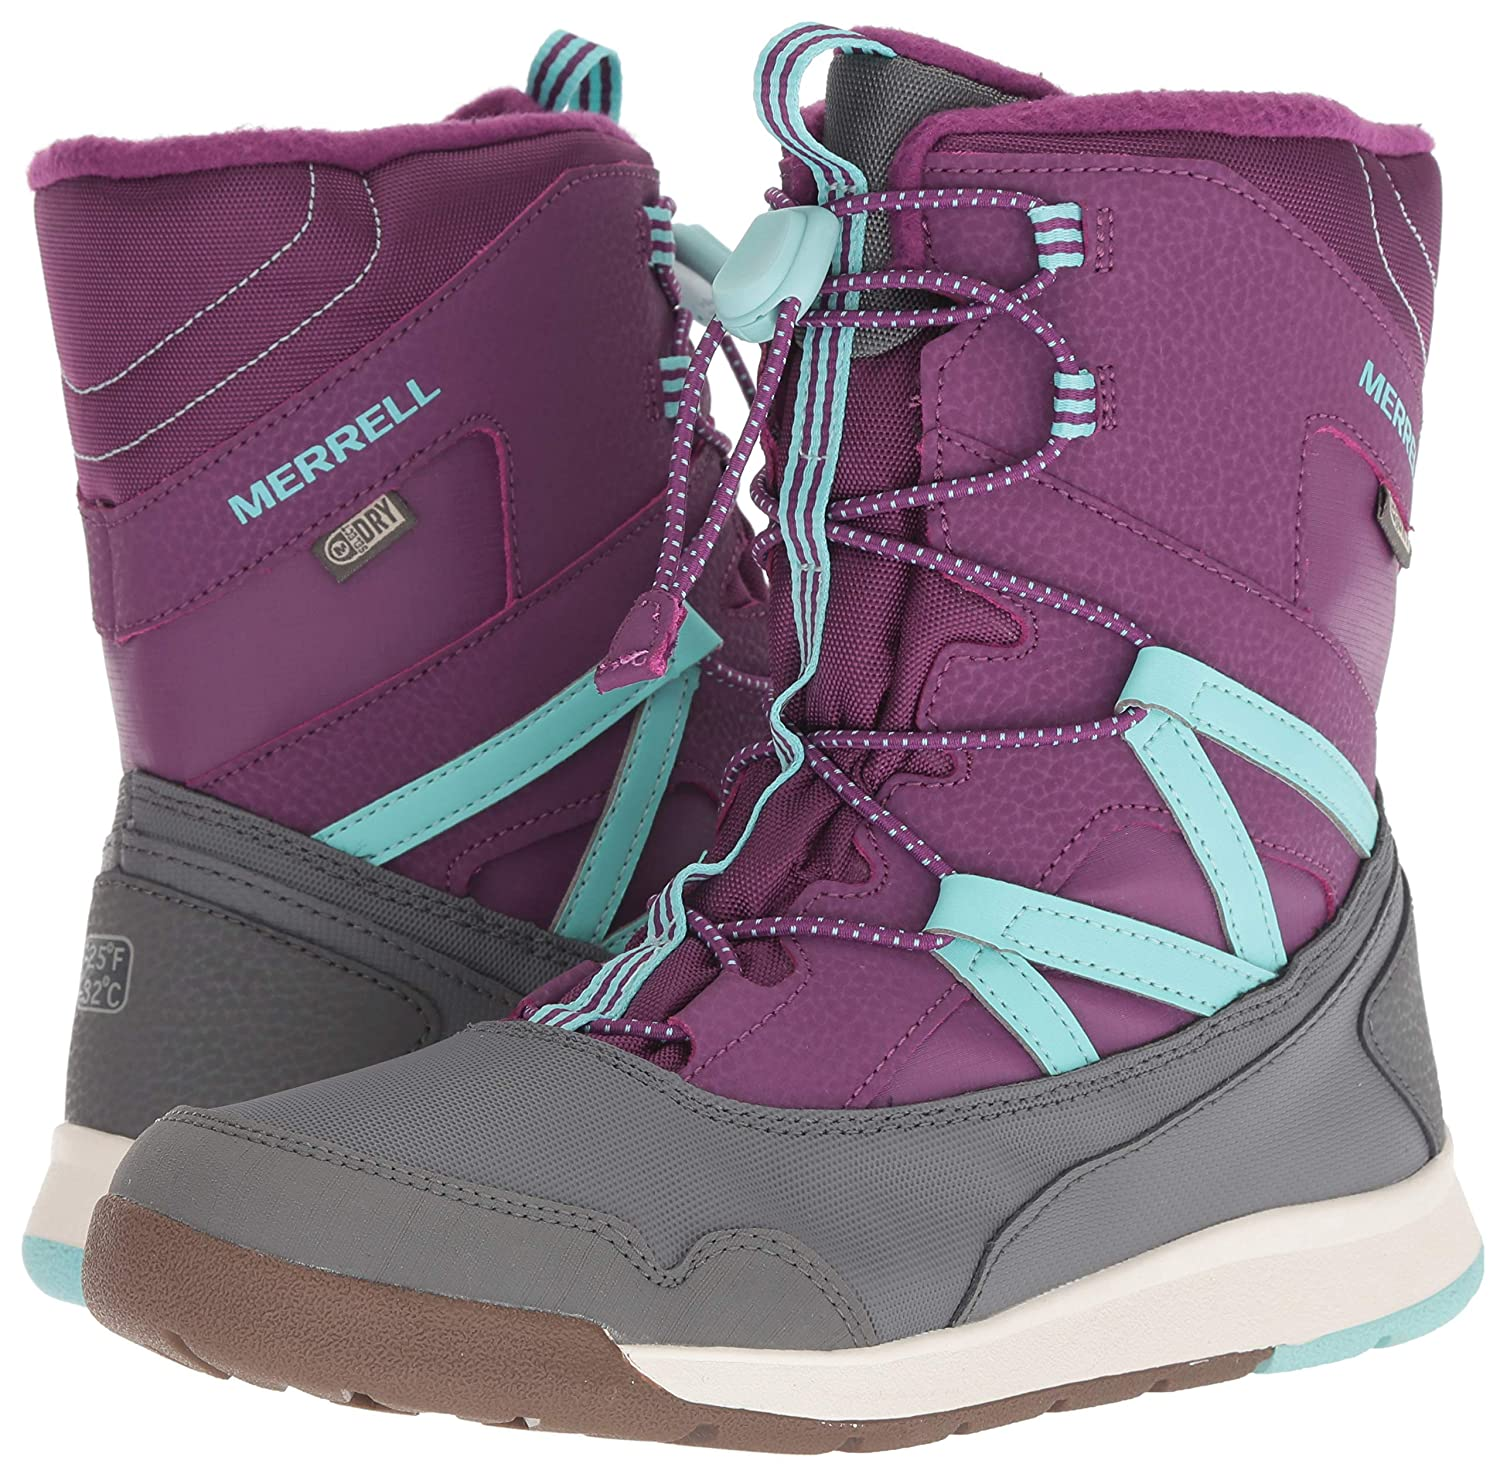 bea4f1df217d2 Amazon.com | Merrell Kids' Snow Crush WTRPF Boot | Snow Boots